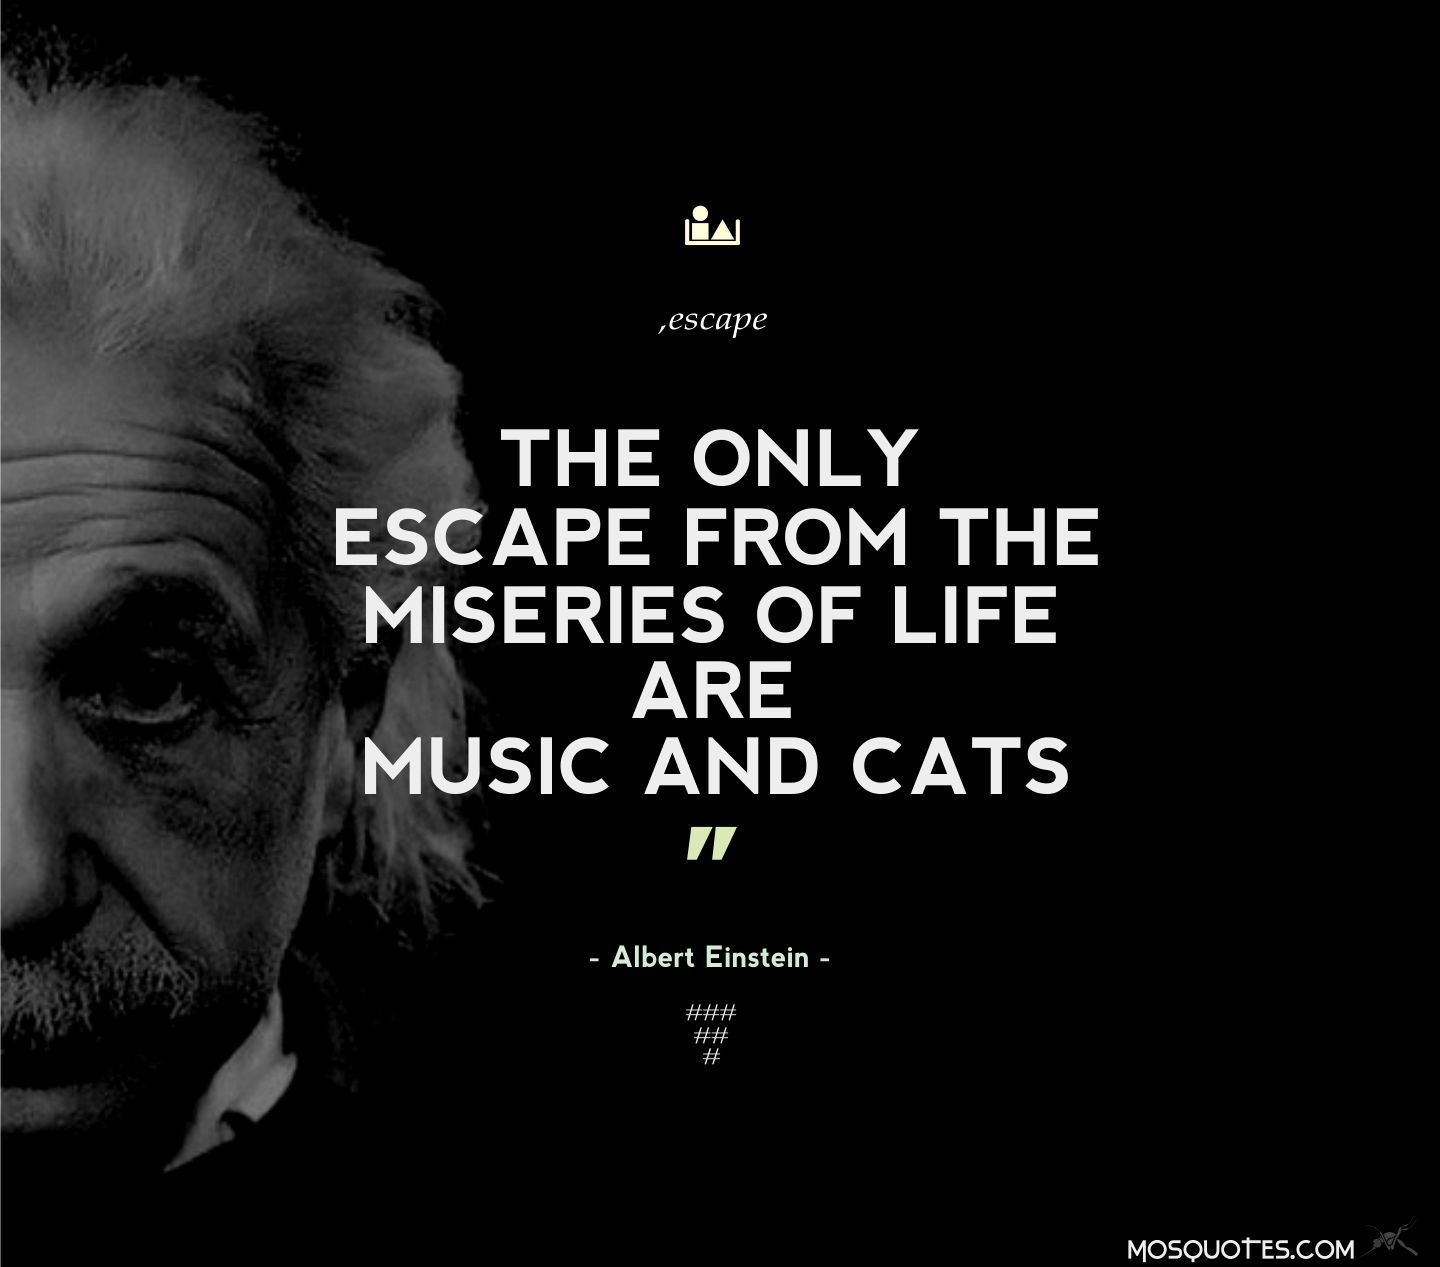 Albert Einstein Inspirational Funny Quotes The Only Escape From The Miseries Of Life Are Music And Cat Funny Inspirational Quotes Einstein Quotes People Quotes